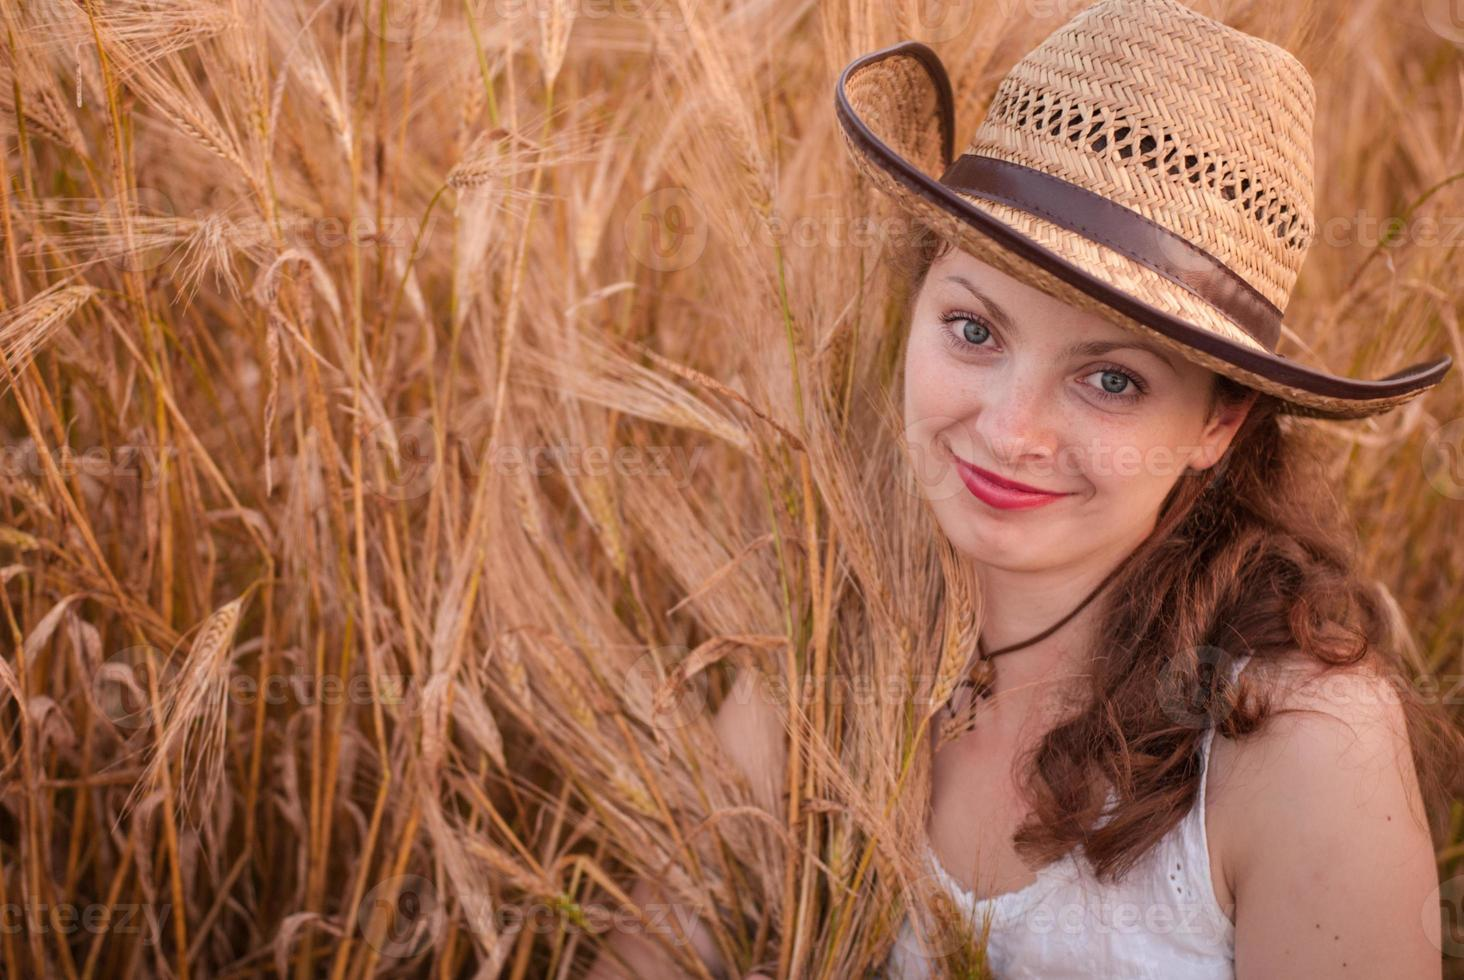 Woman in the wheat field photo